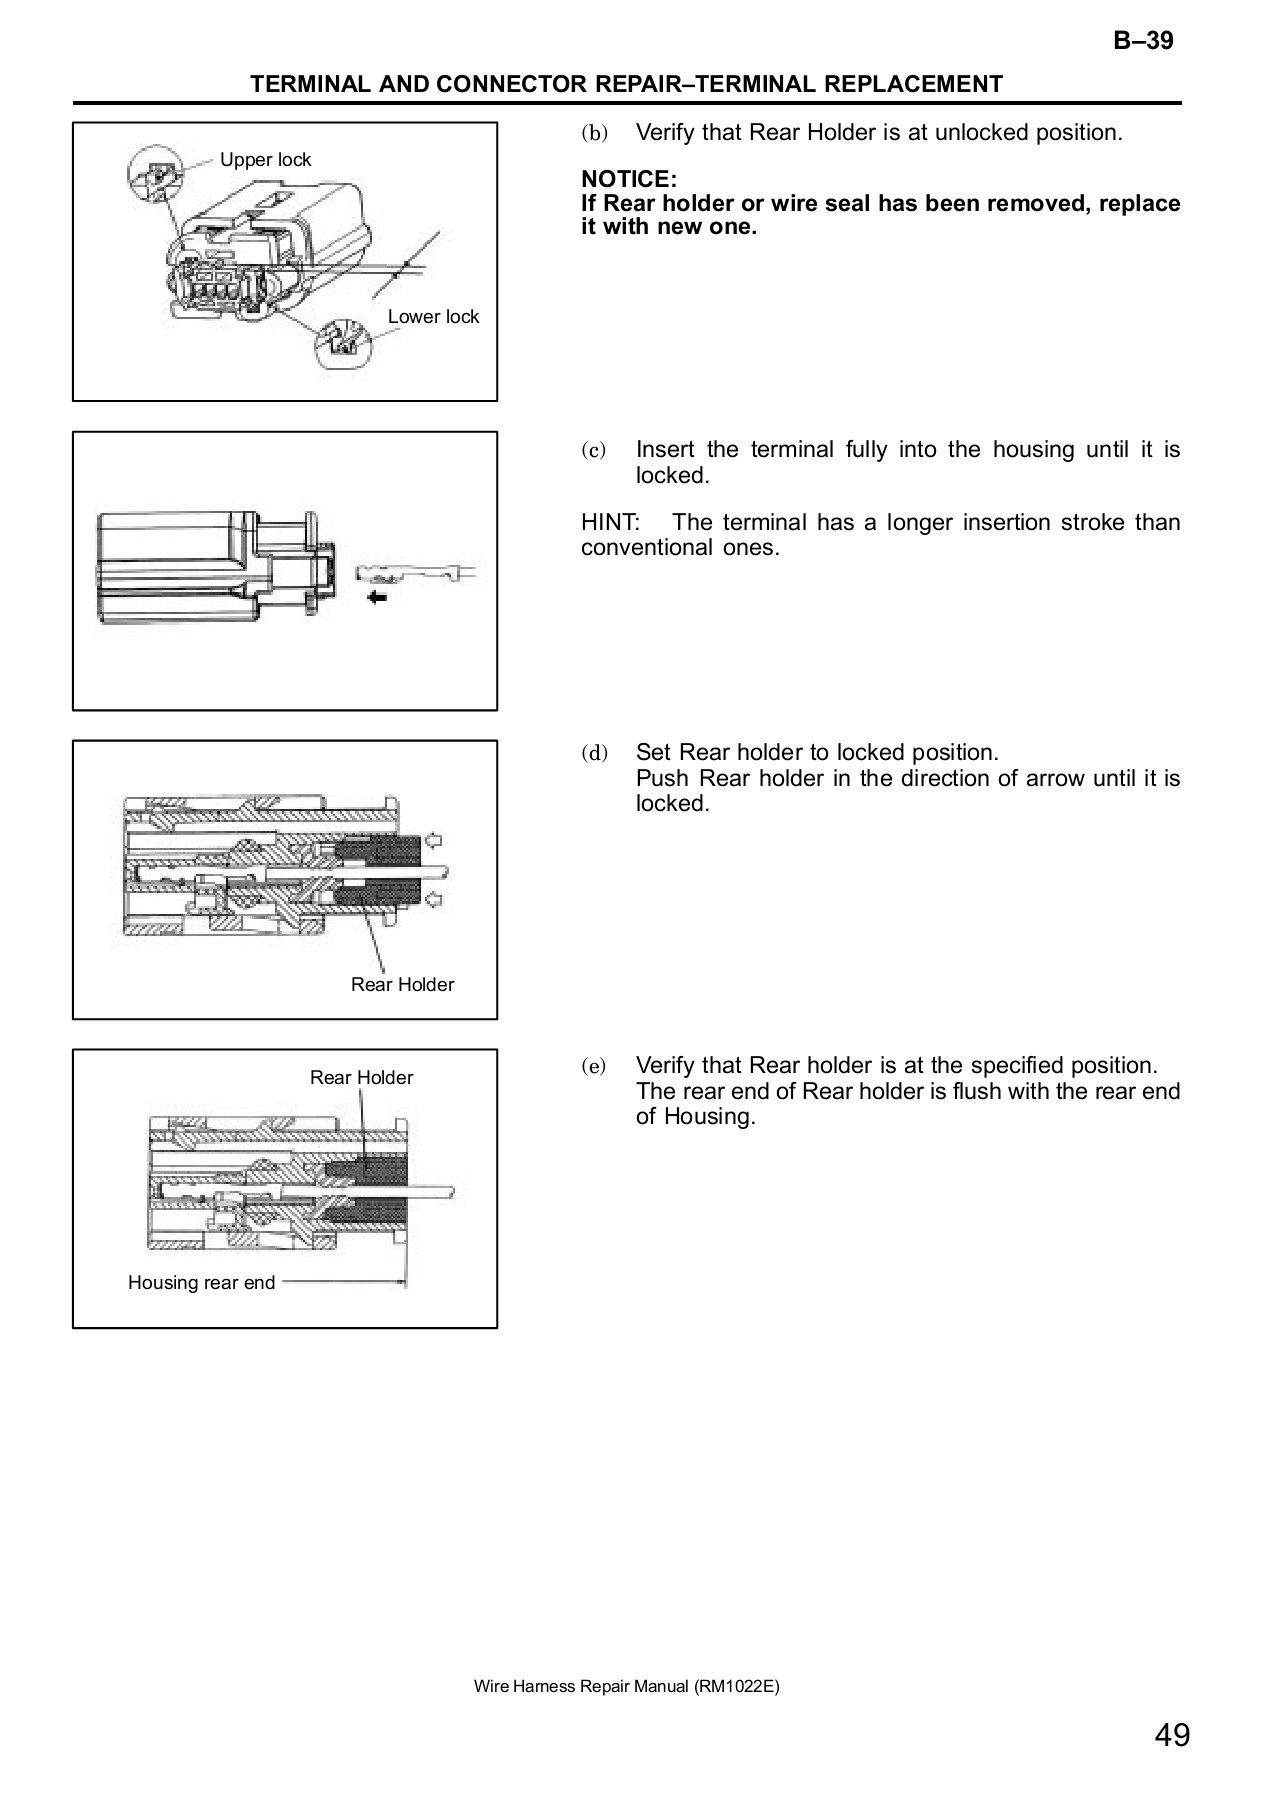 small resolution of toyota wiring repair manual pdfdrive com pages 51 100 text version fliphtml5